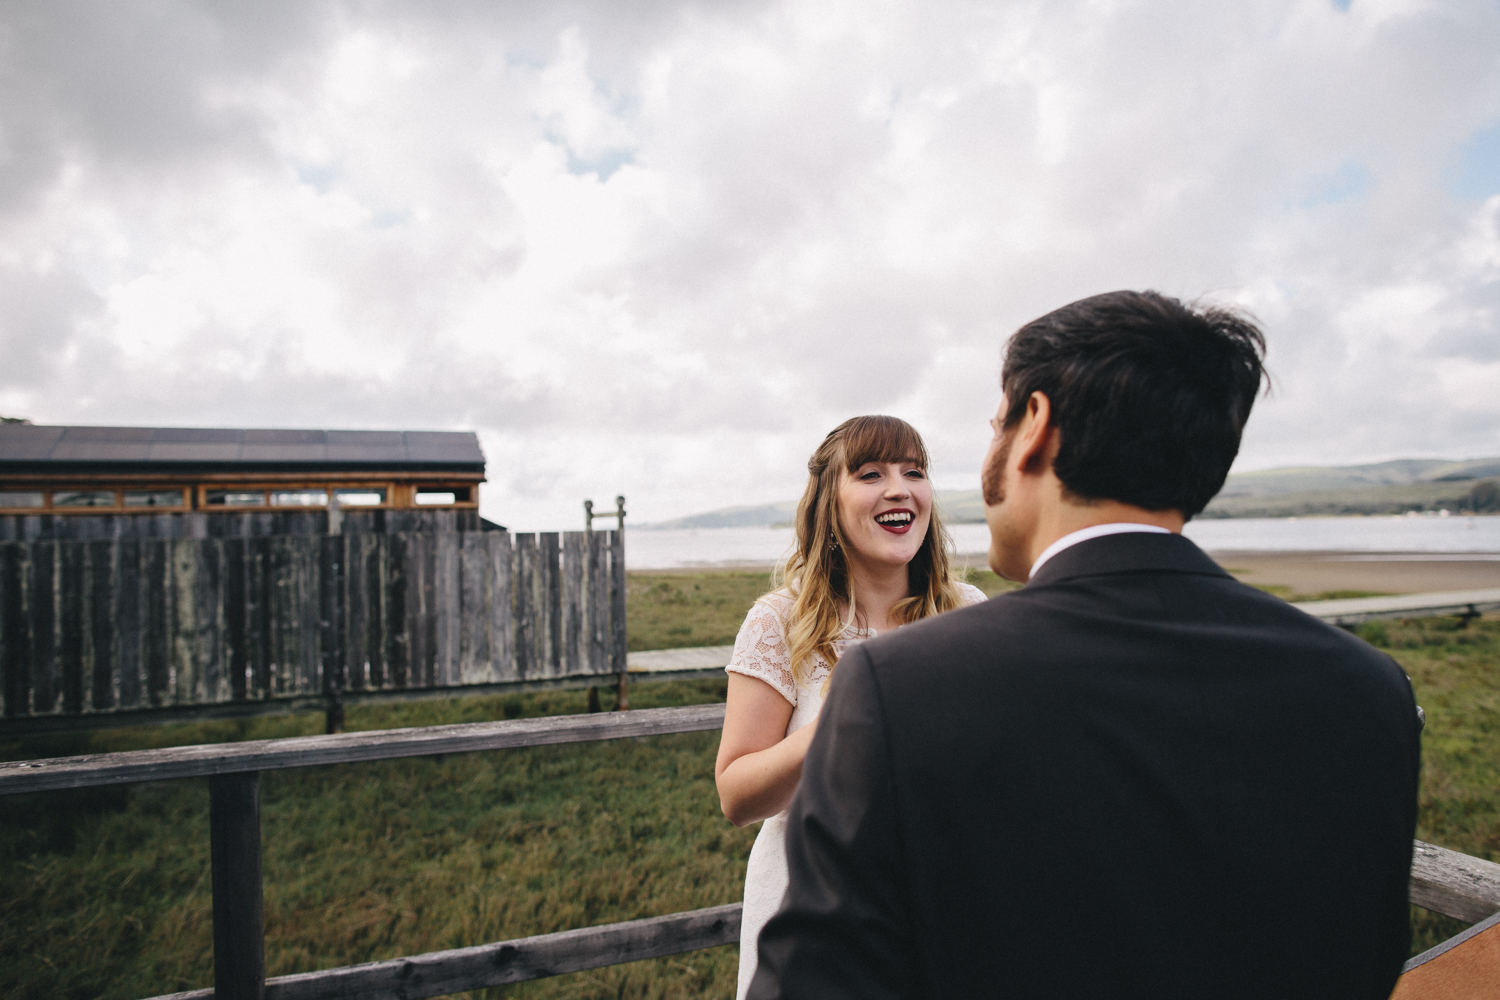 Point Reyes Inverness Wedding Photographer Rachelle Derouin-50.jpg